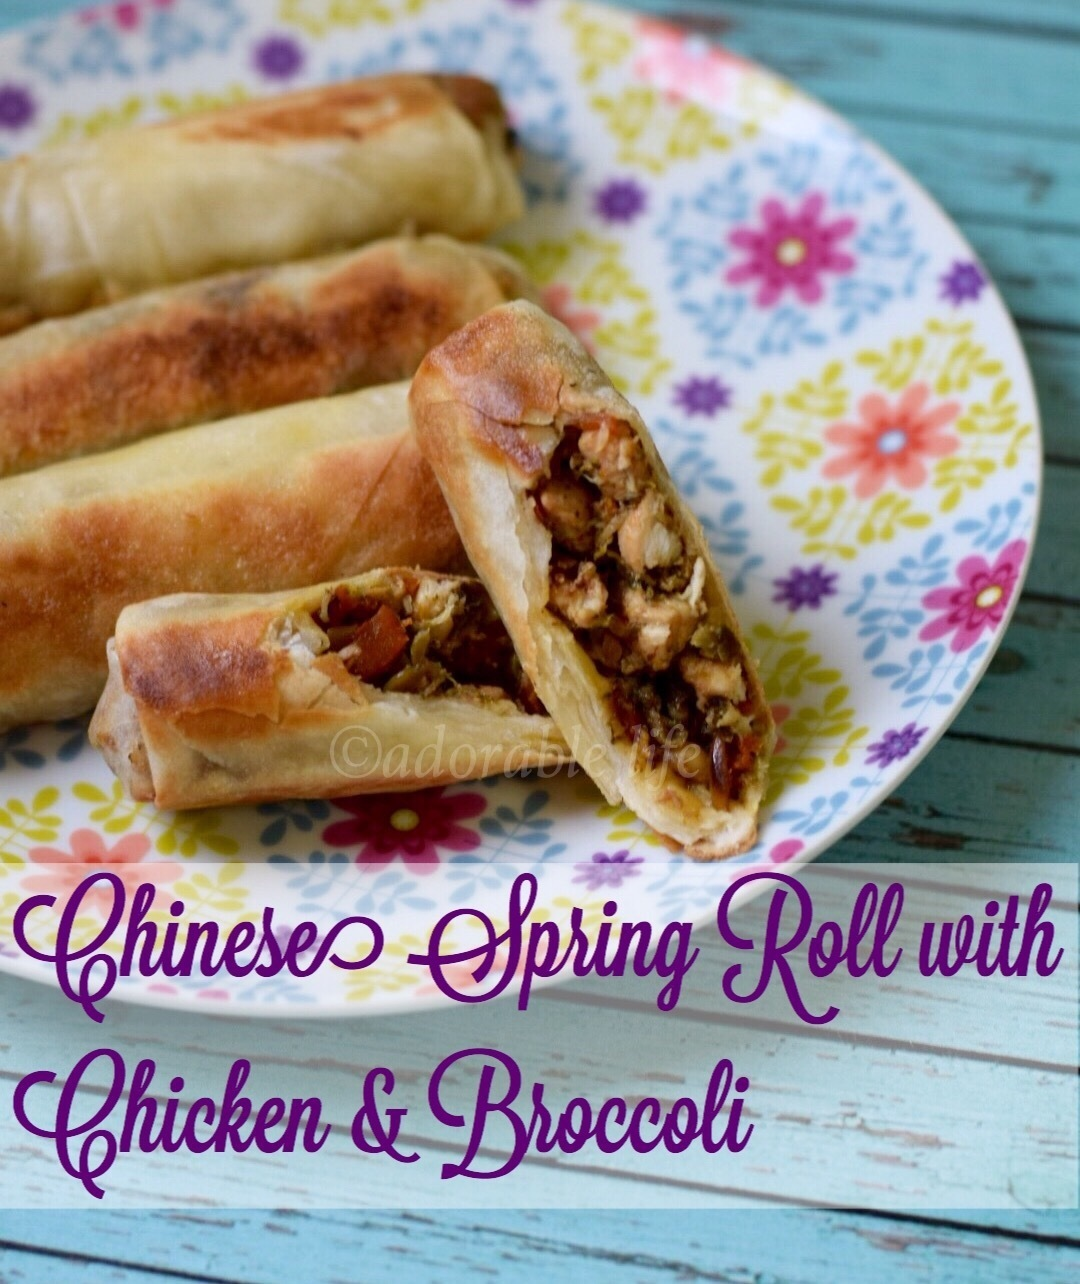 Chinese Spring Rolls with Chicken & Broccoli